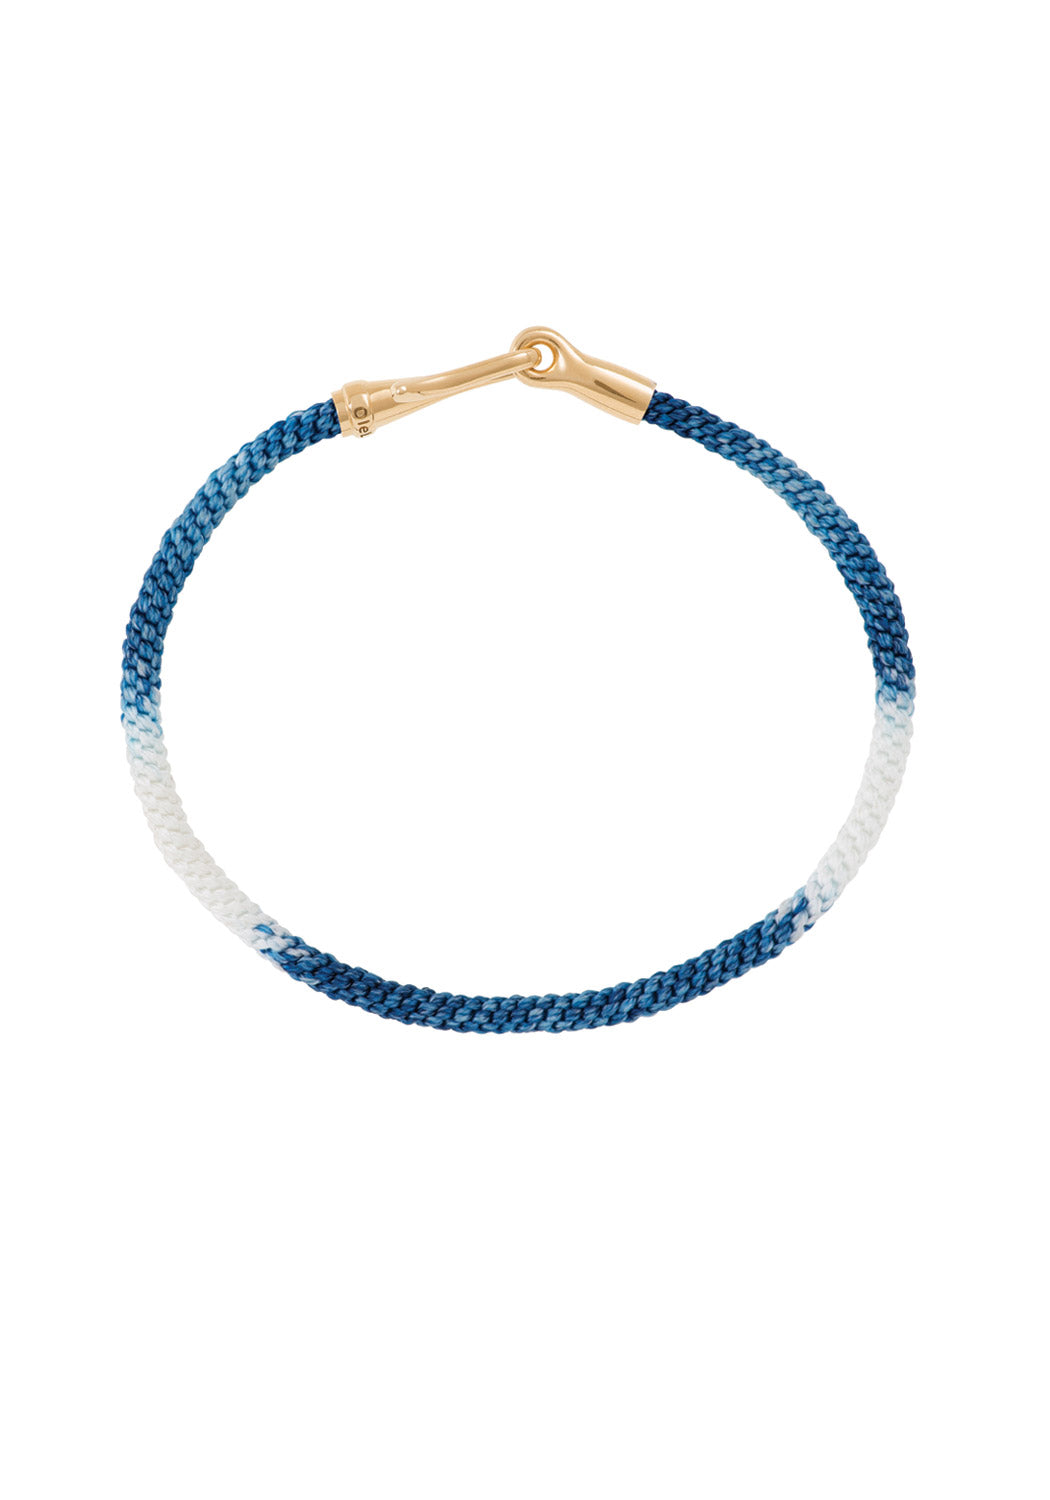 OLE LYNGGAARD Life Rope Blue Jean Bracelet at Oster Jewelers (16cm)